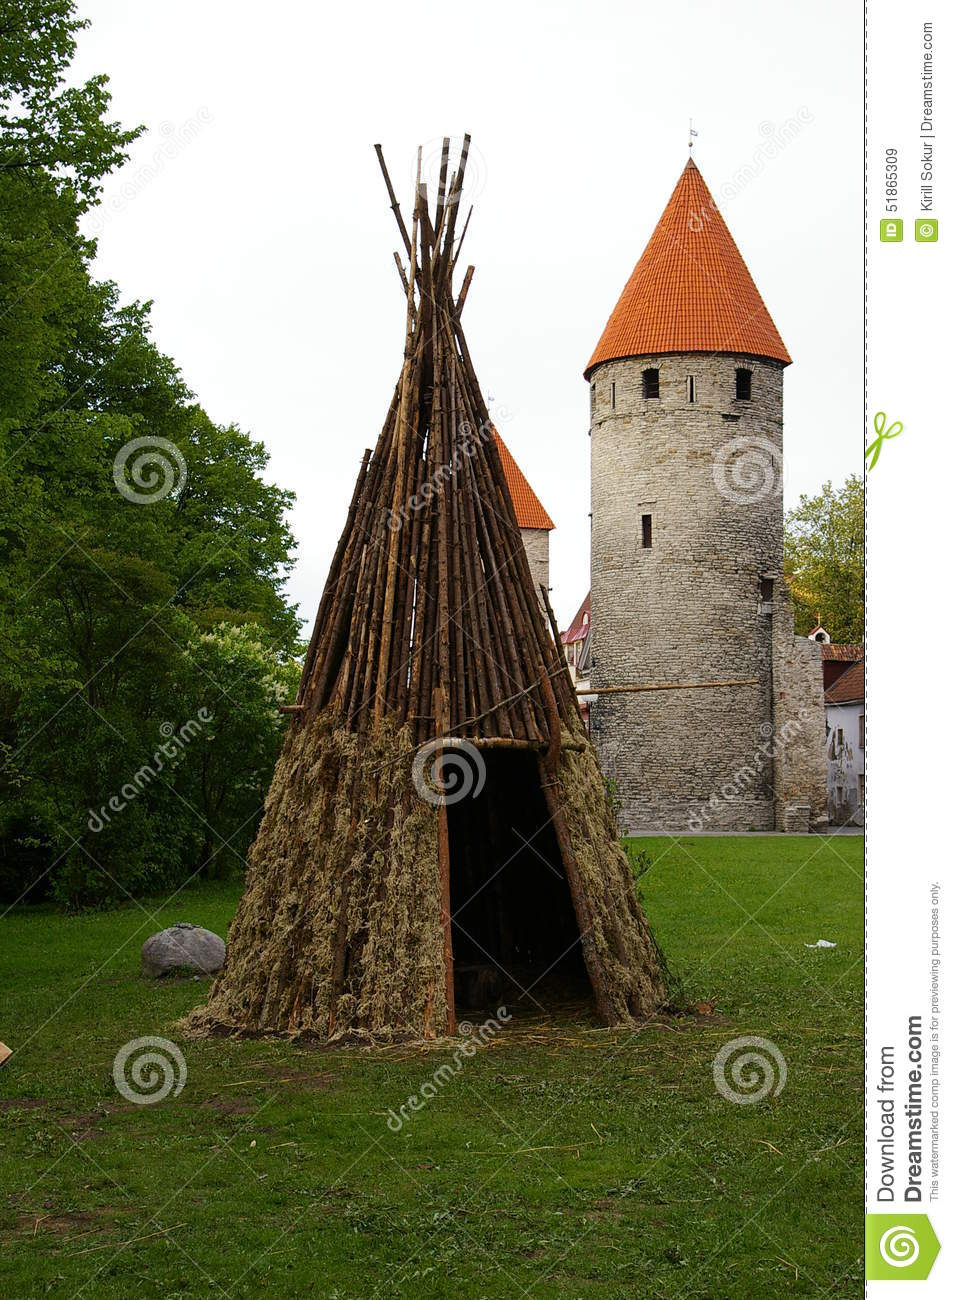 tipi en bois pr s des murs de la forteresse m di vale antique photo stock image 51865309. Black Bedroom Furniture Sets. Home Design Ideas